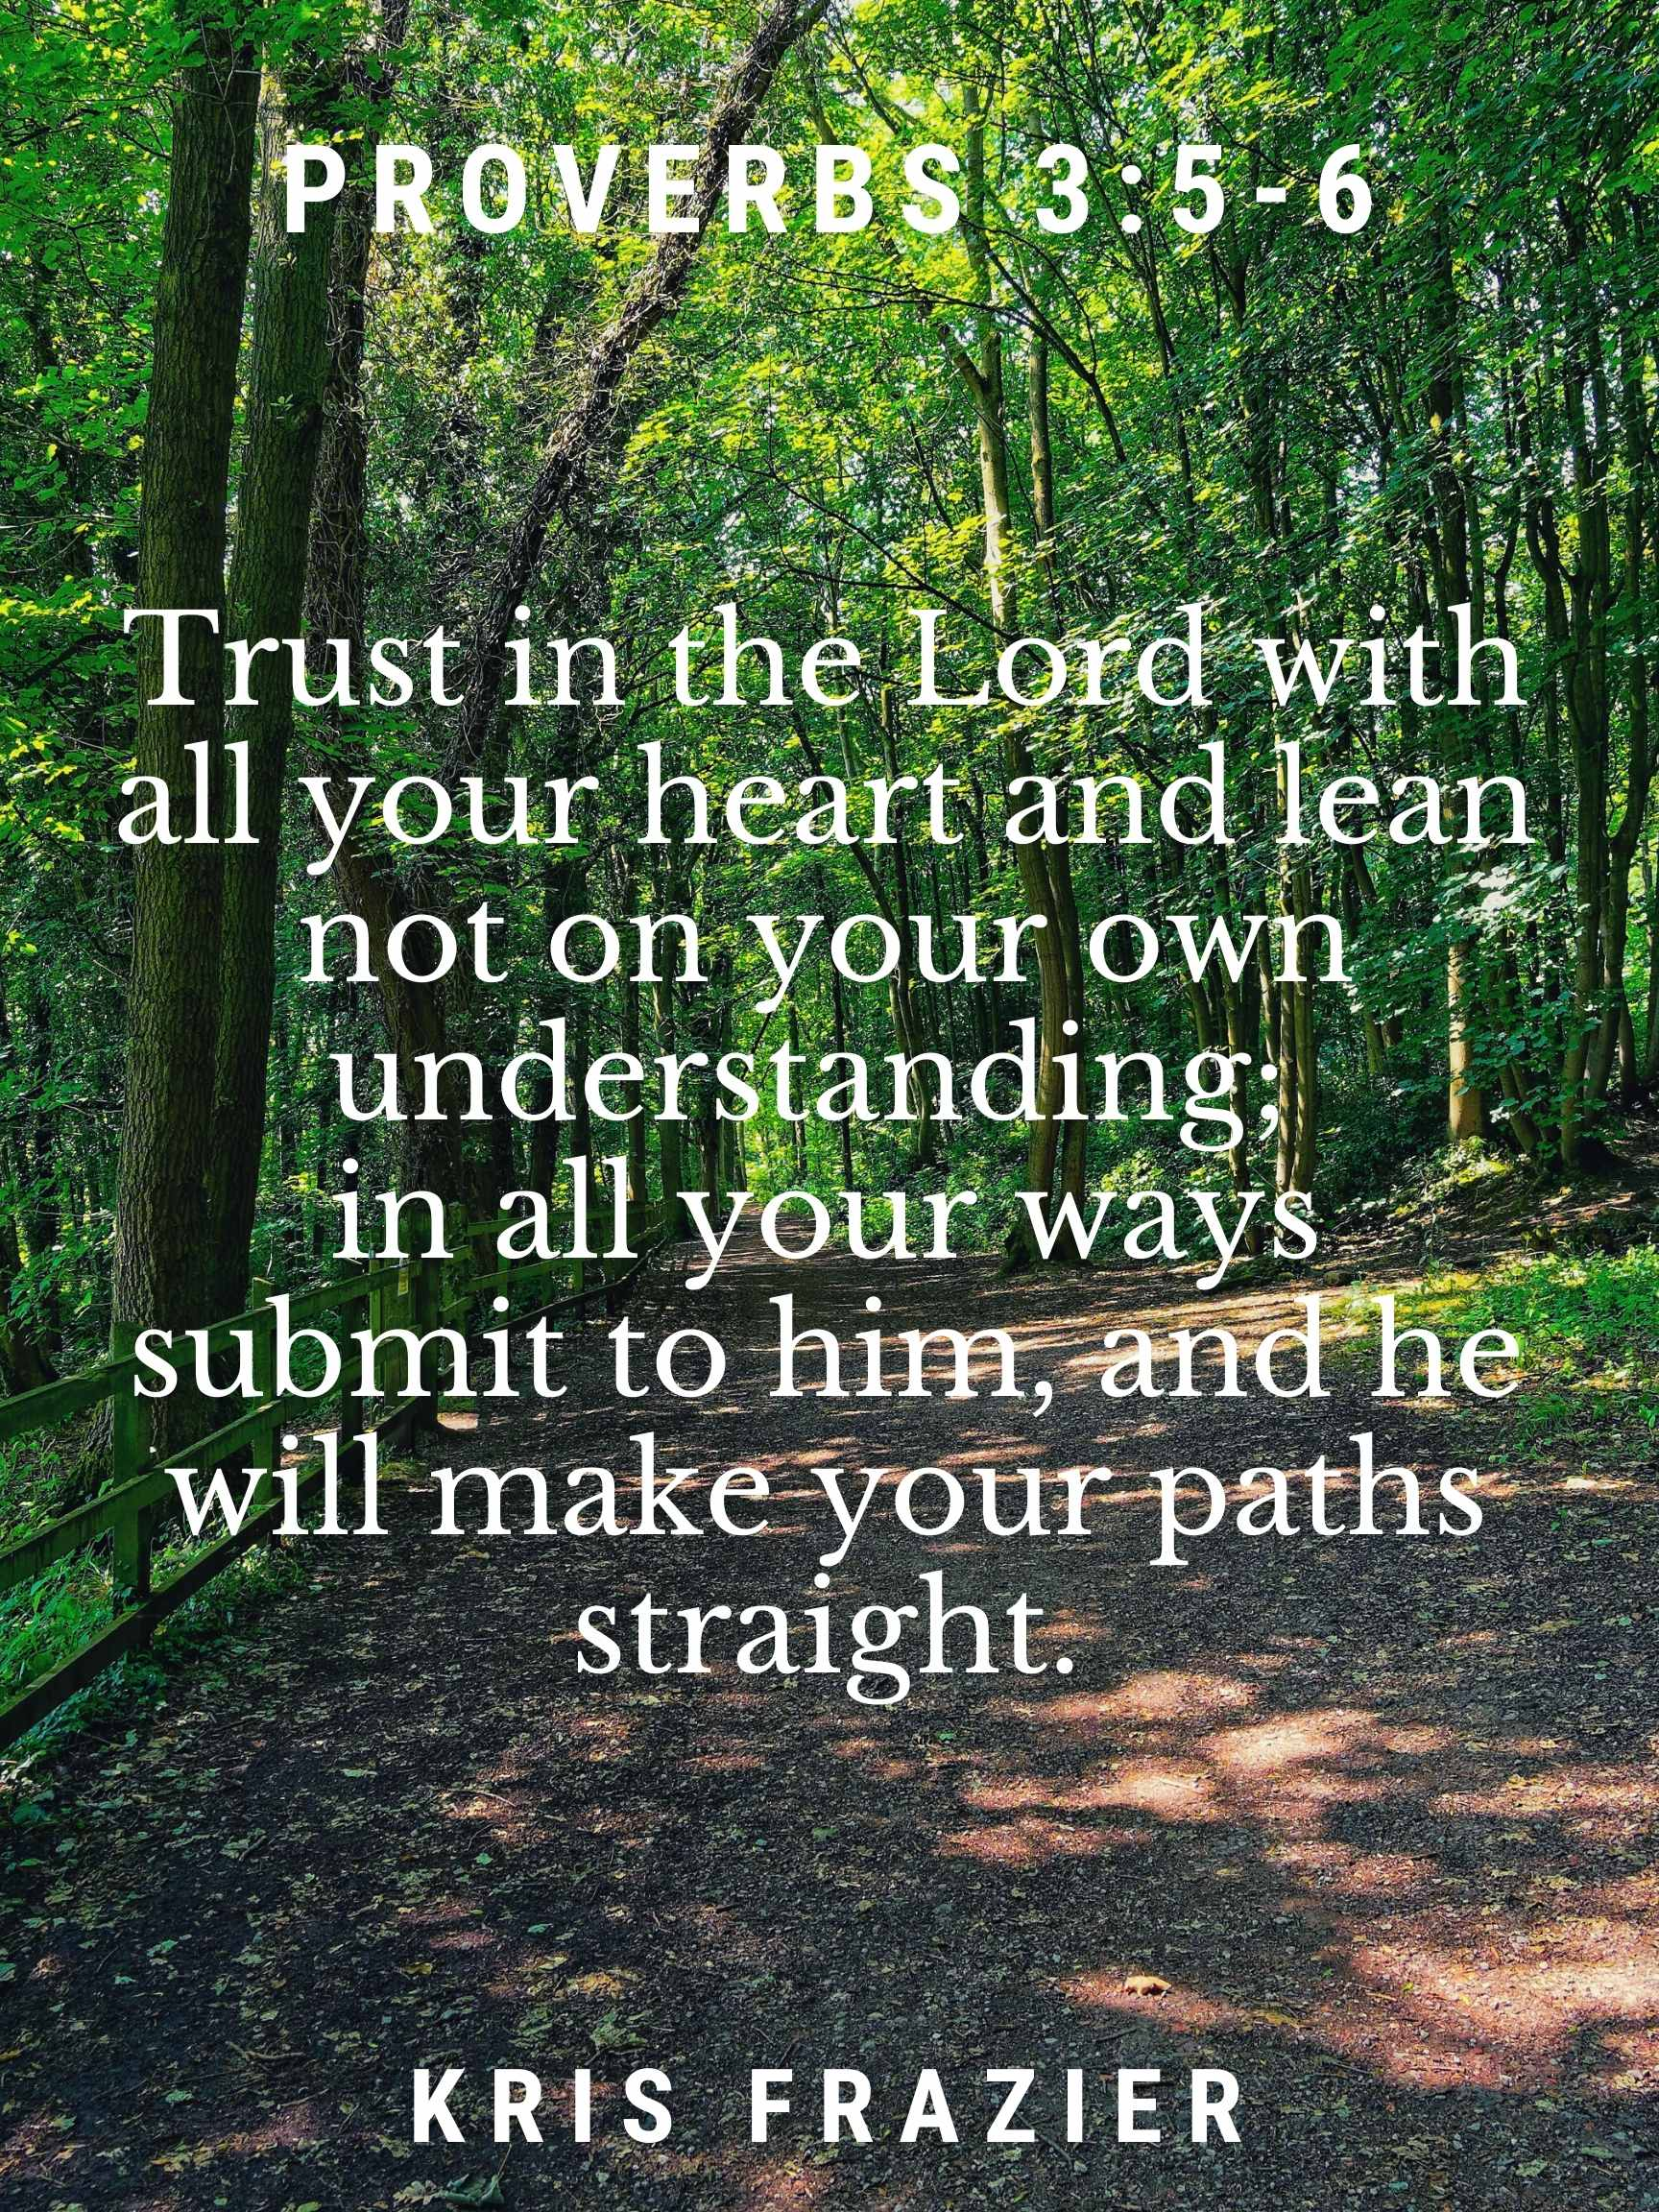 Trust in the Lord with all your heart and lean not on your own understanding; in all your ways submit to him, and he will make your paths straight. Proverbs 3:5-6 Kris Frazier